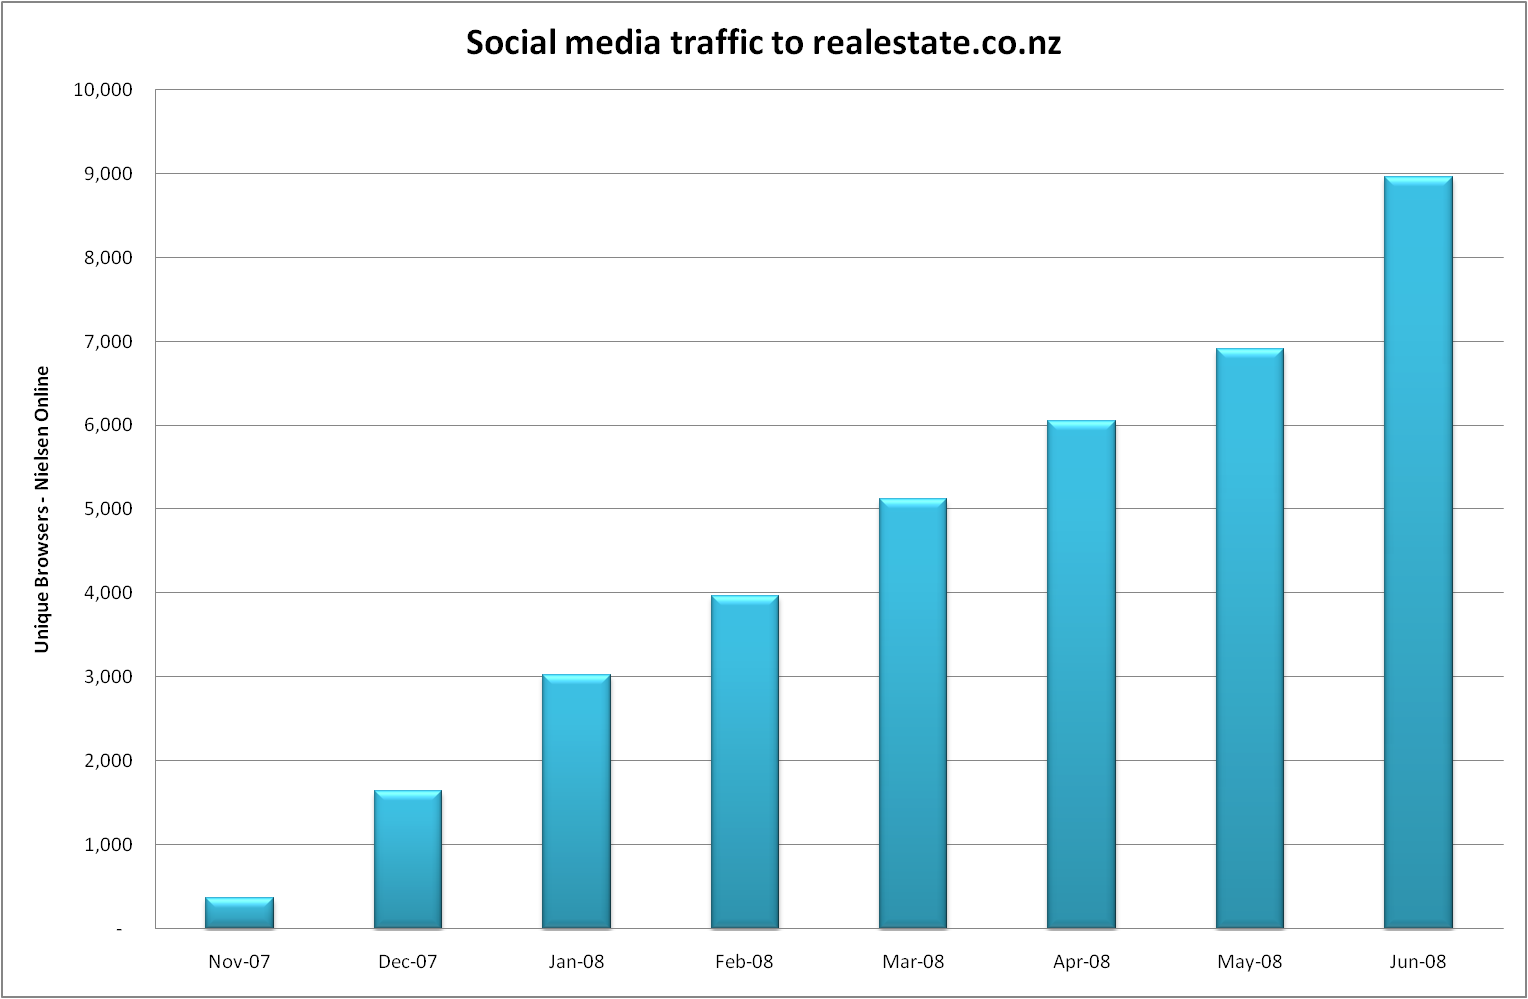 Social Media traffic on realestate.co.nz